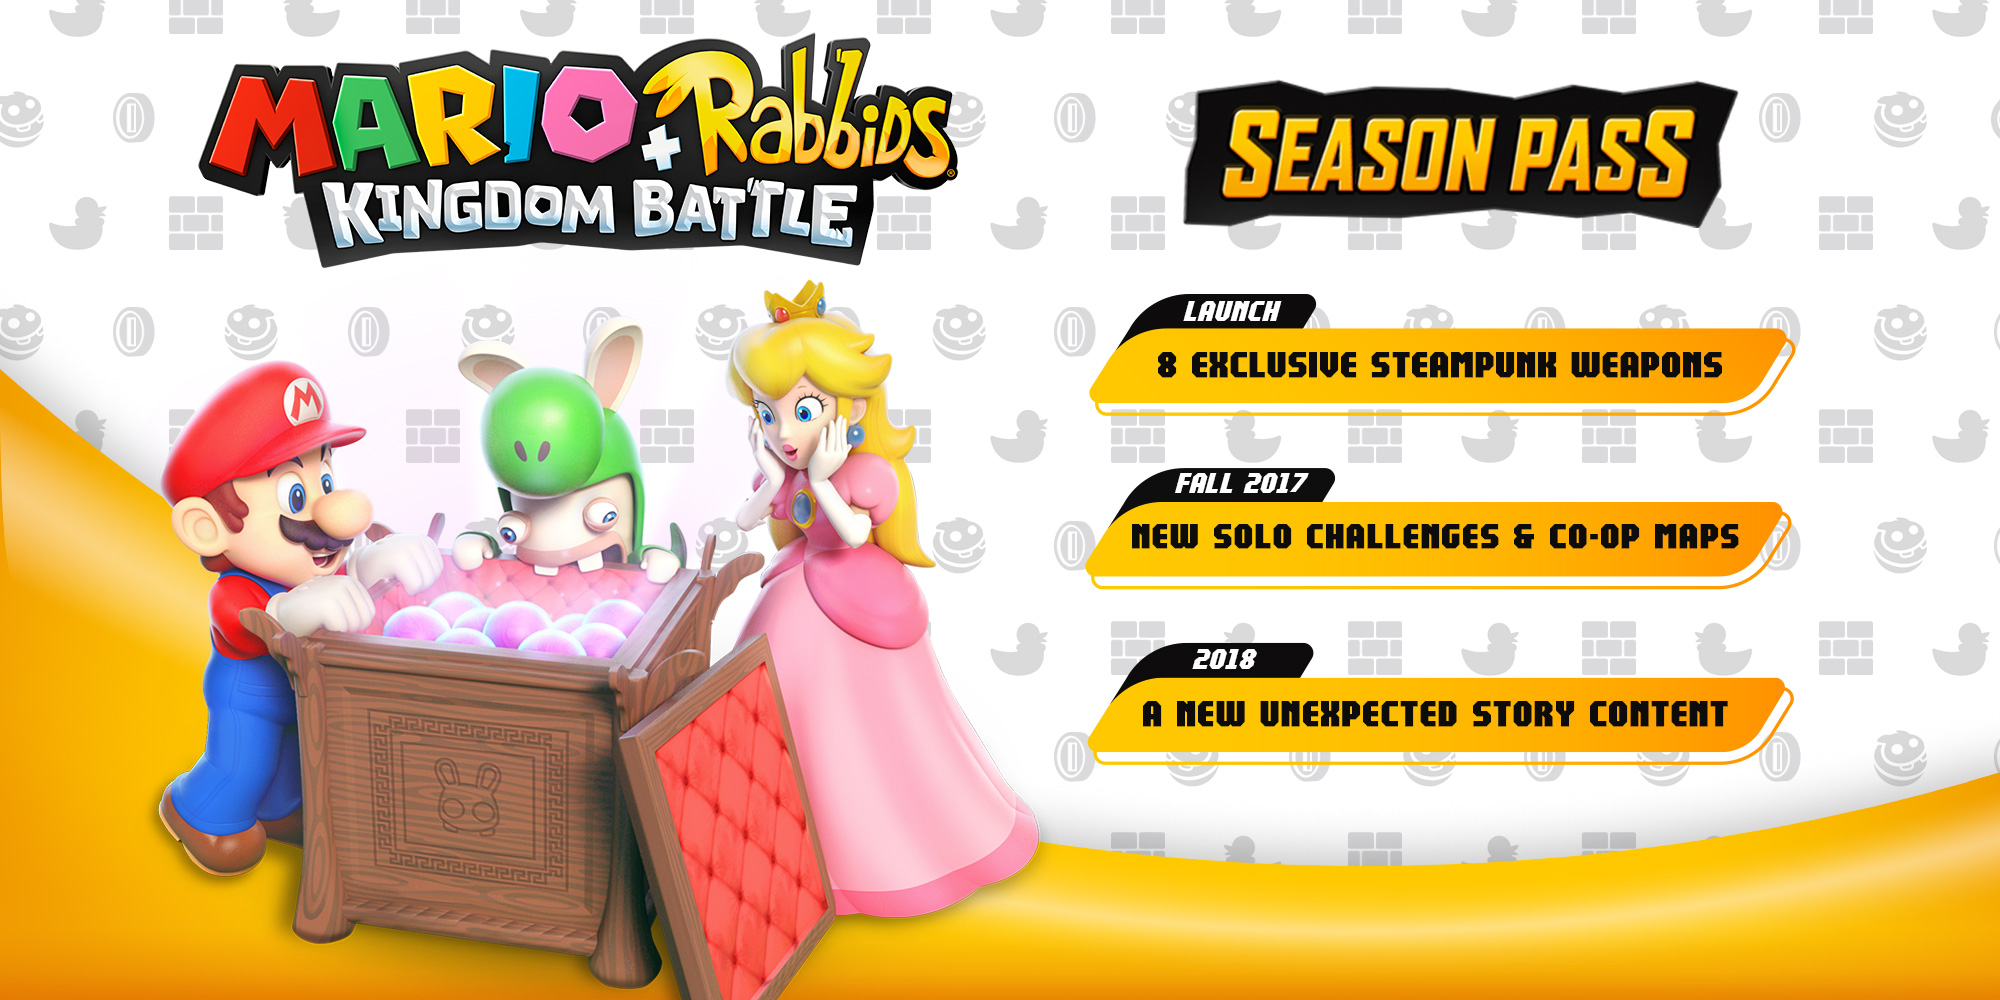 Mario + Rabbids Kingdom Battle Season Pass announced